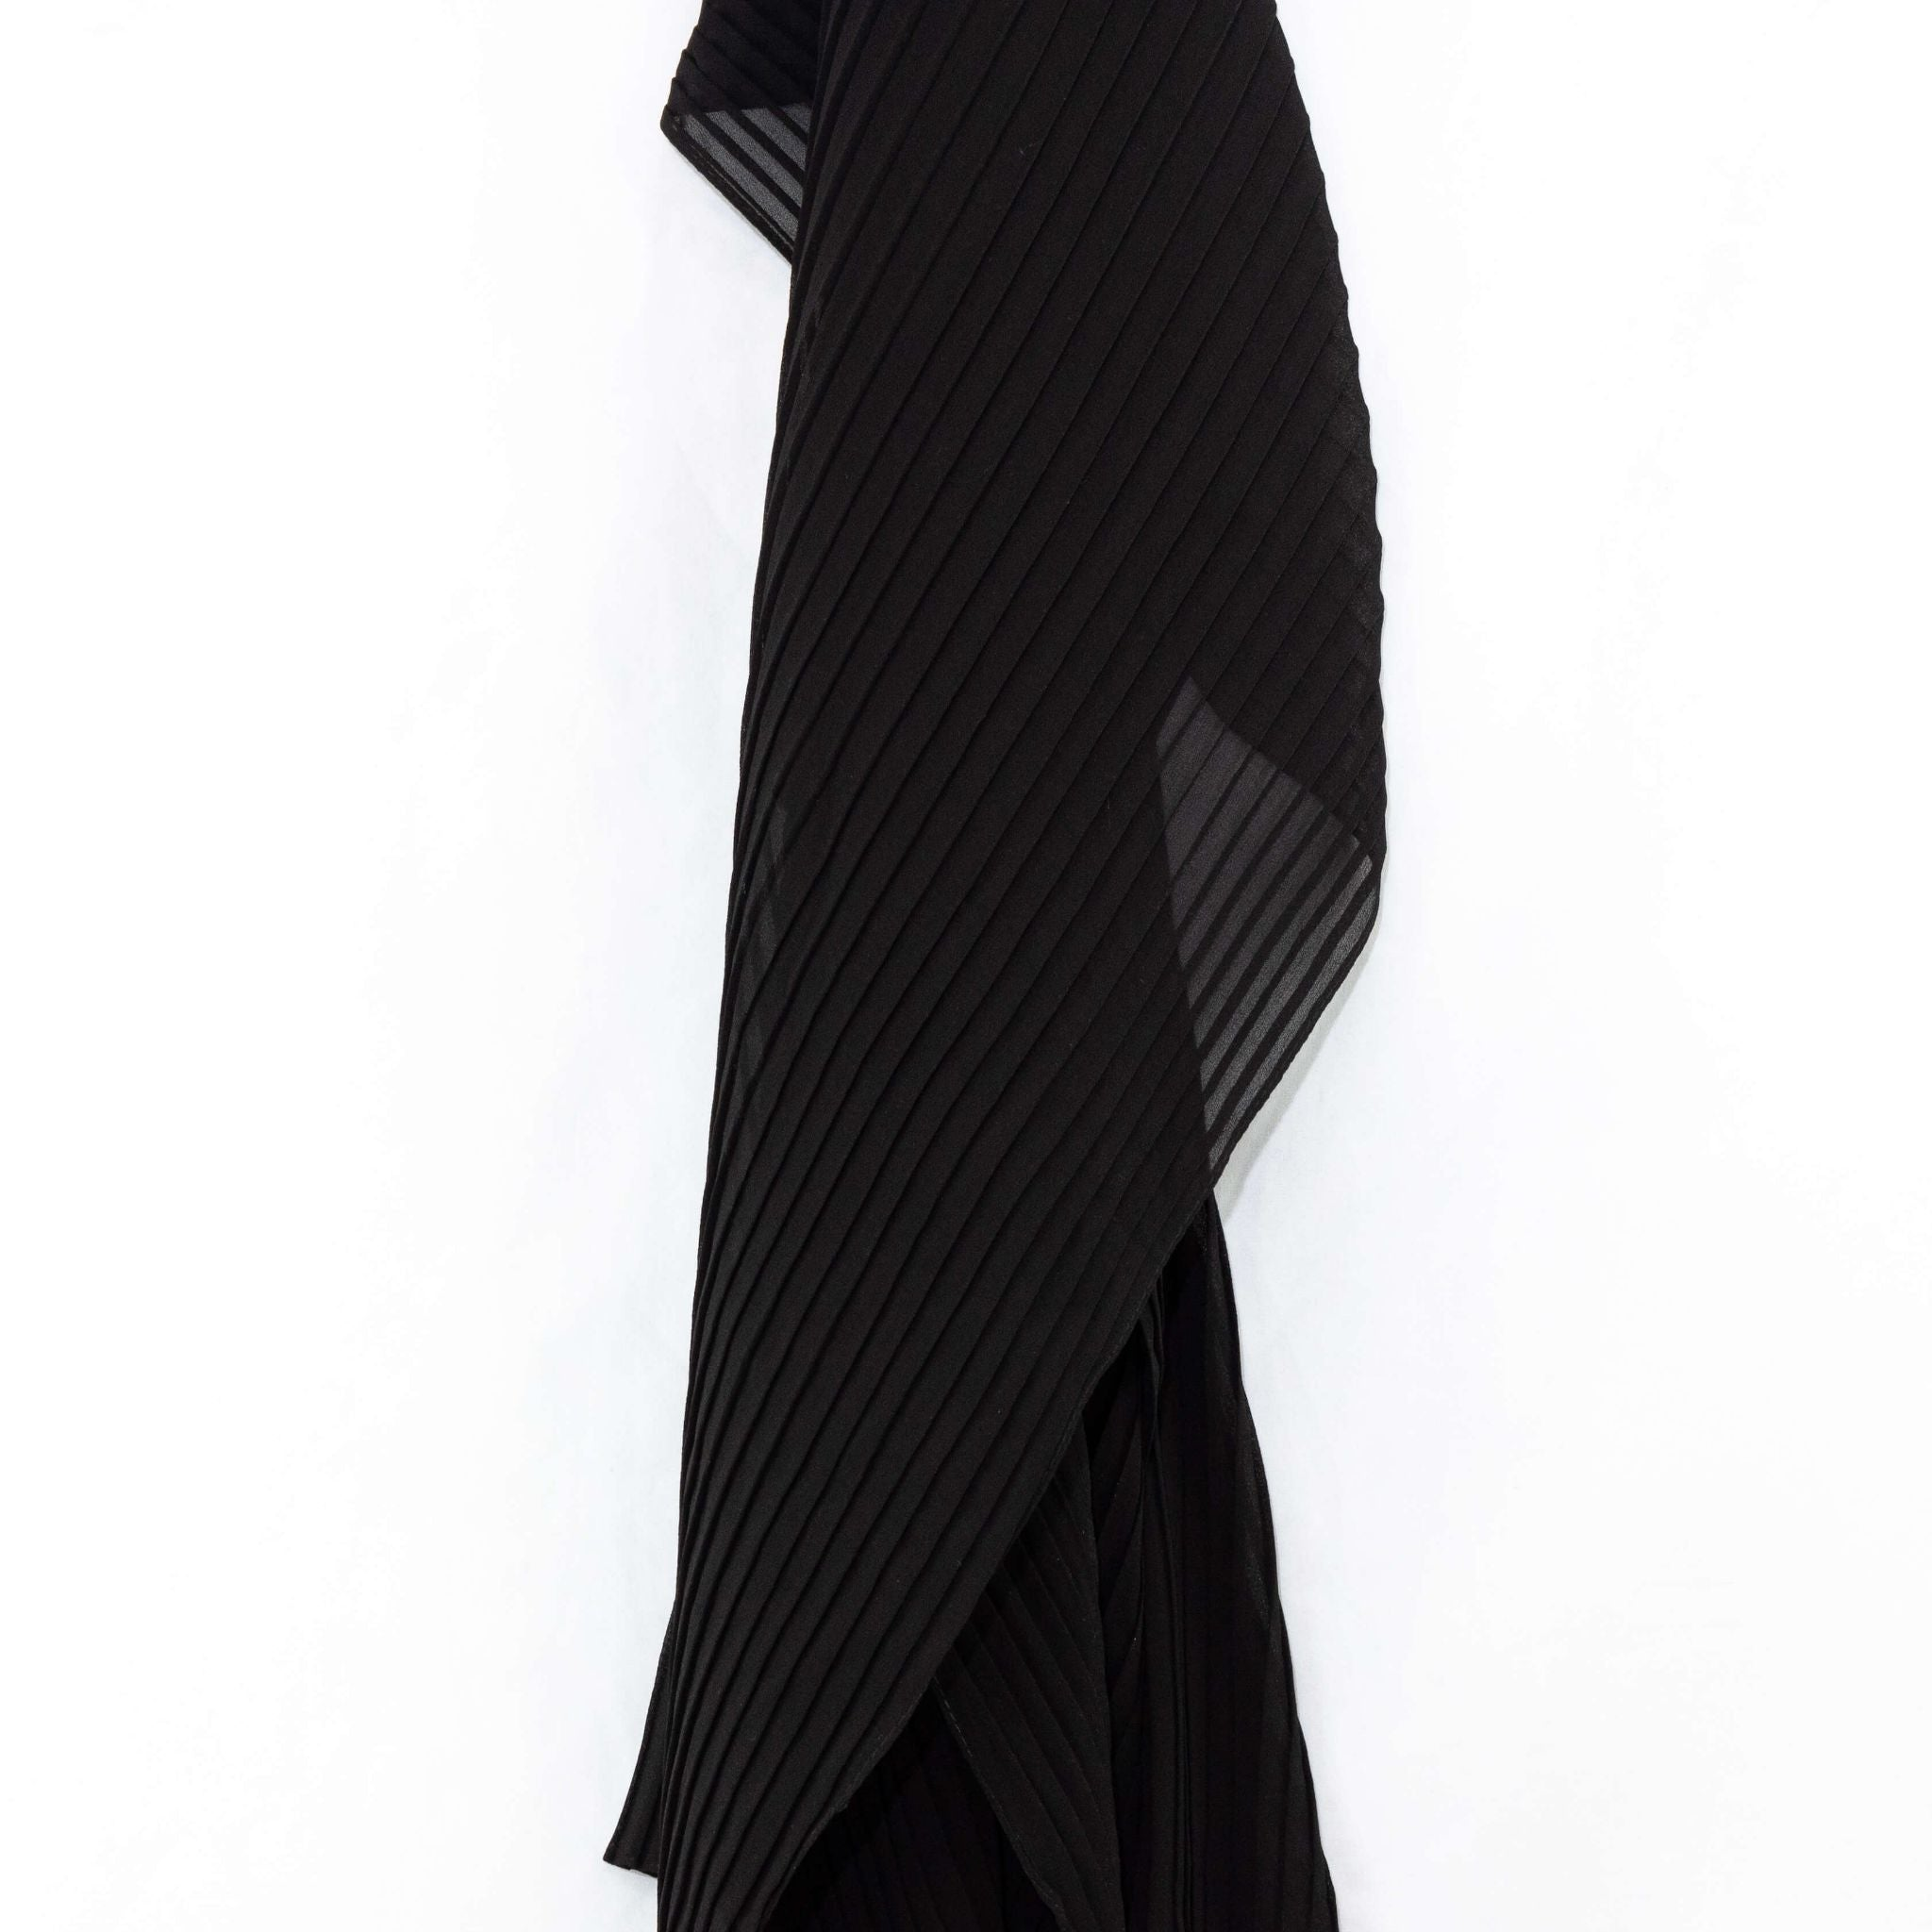 Onyx Black Pleated Chiffon Hijab